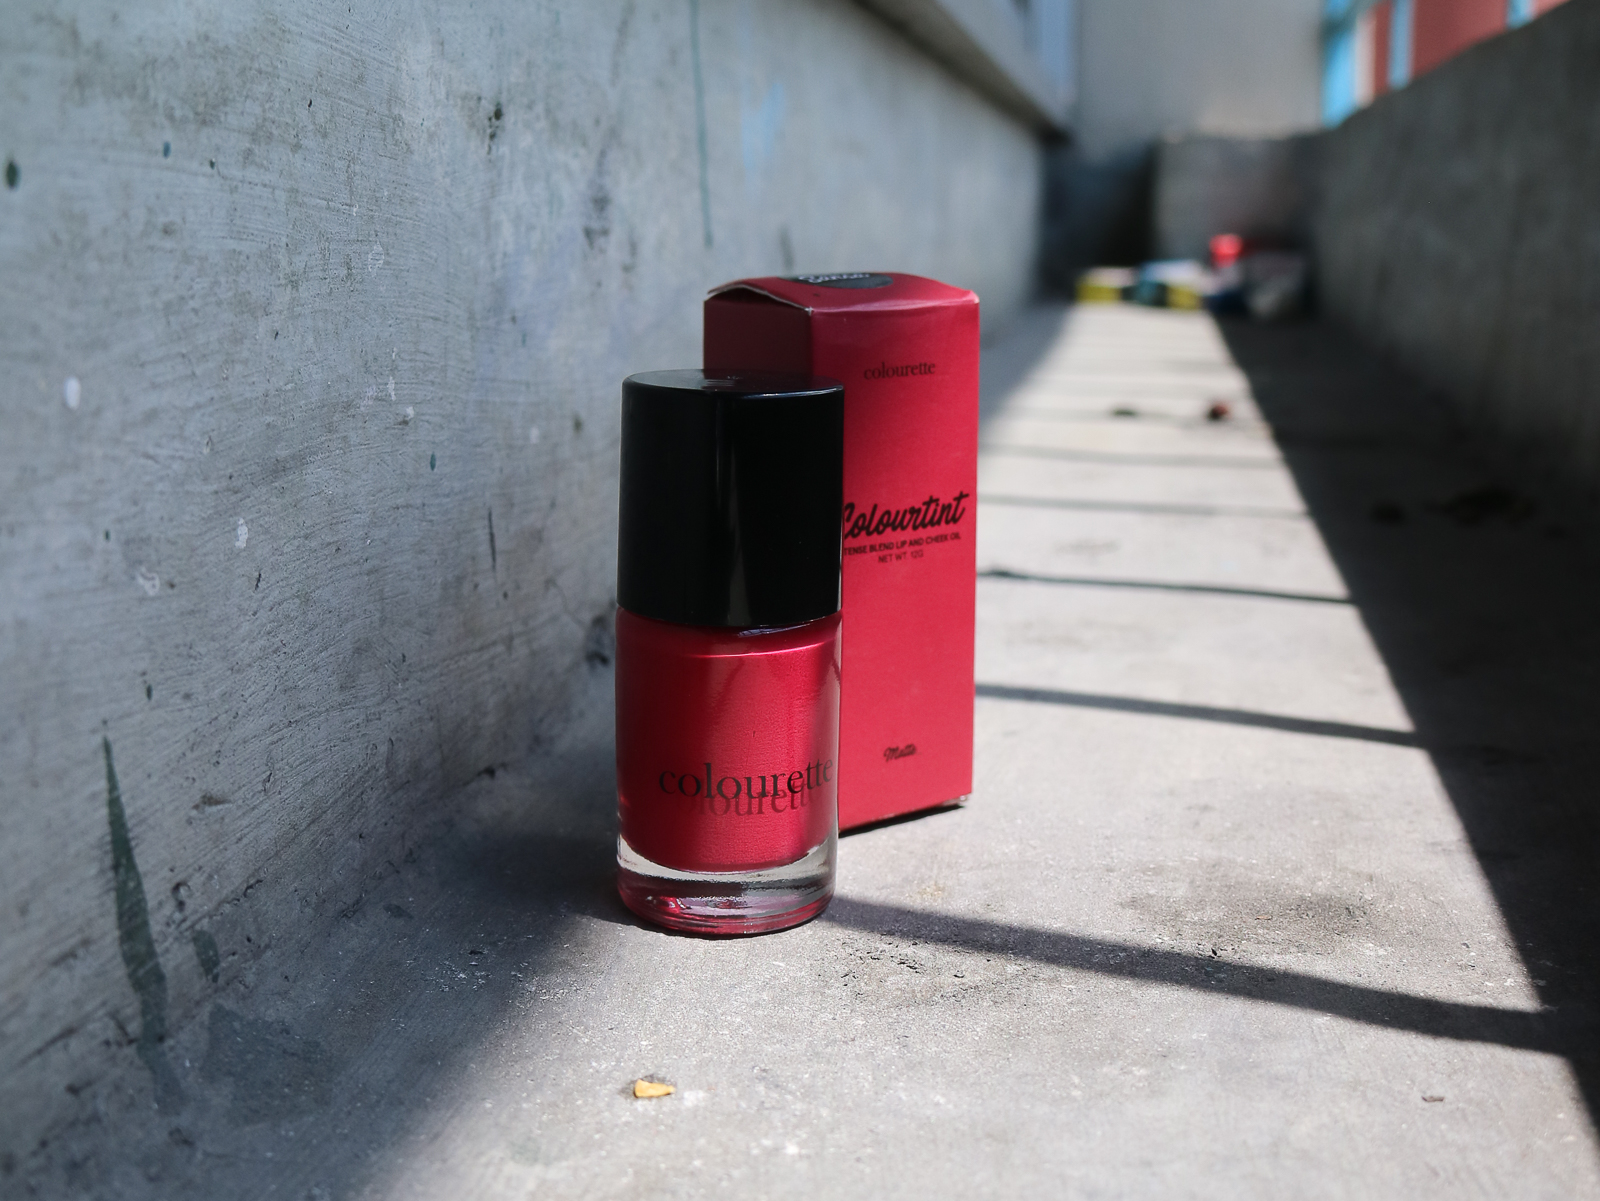 Colourette Colortint Review in Sansa